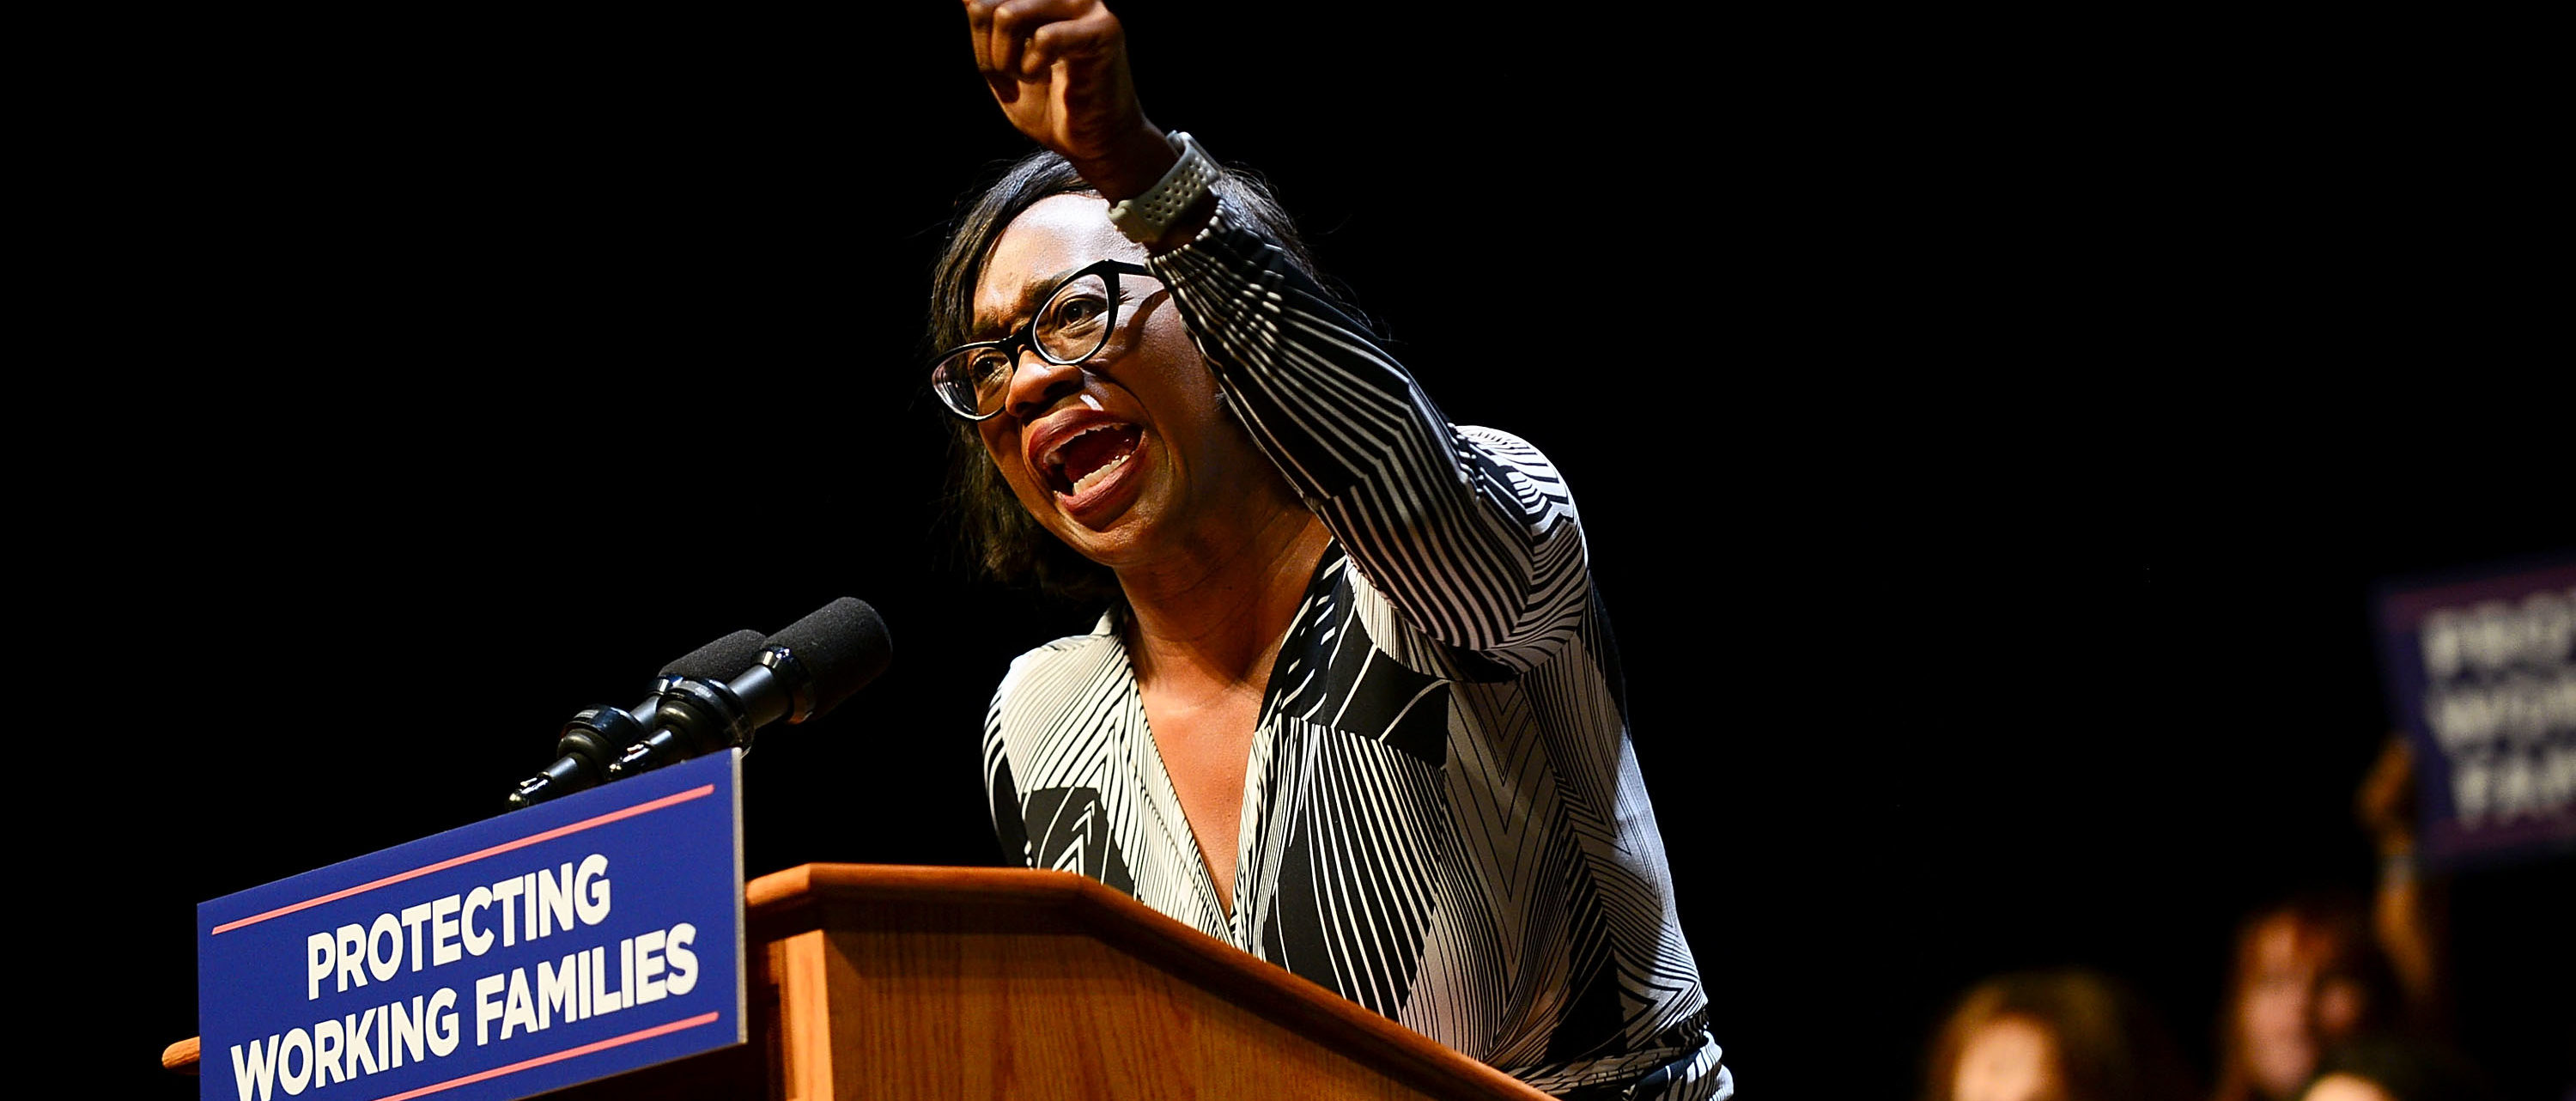 READING, PA - DECEMBER 03: Nina Turner, President of Our Revolution and former Ohio State Senator speaks on stage during the Protecting Working Families Rally to stand up against the horrific GOP tax proposal, hosted by Not One Penny, and MoveOn.org at Santander Performing Arts Center on December 3, 2017 in Reading, Pennsylvania. (Photo by Lisa Lake/Getty Images for MoveOn.org)